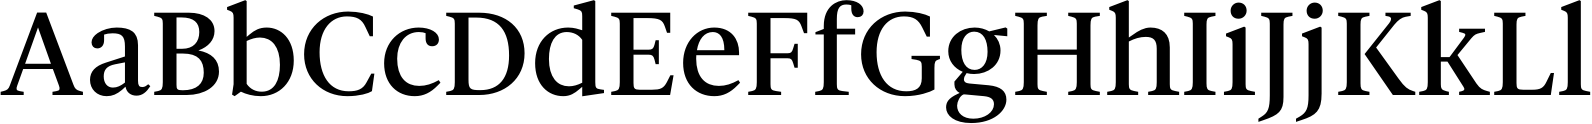 Gauthier Next FY Medium Font